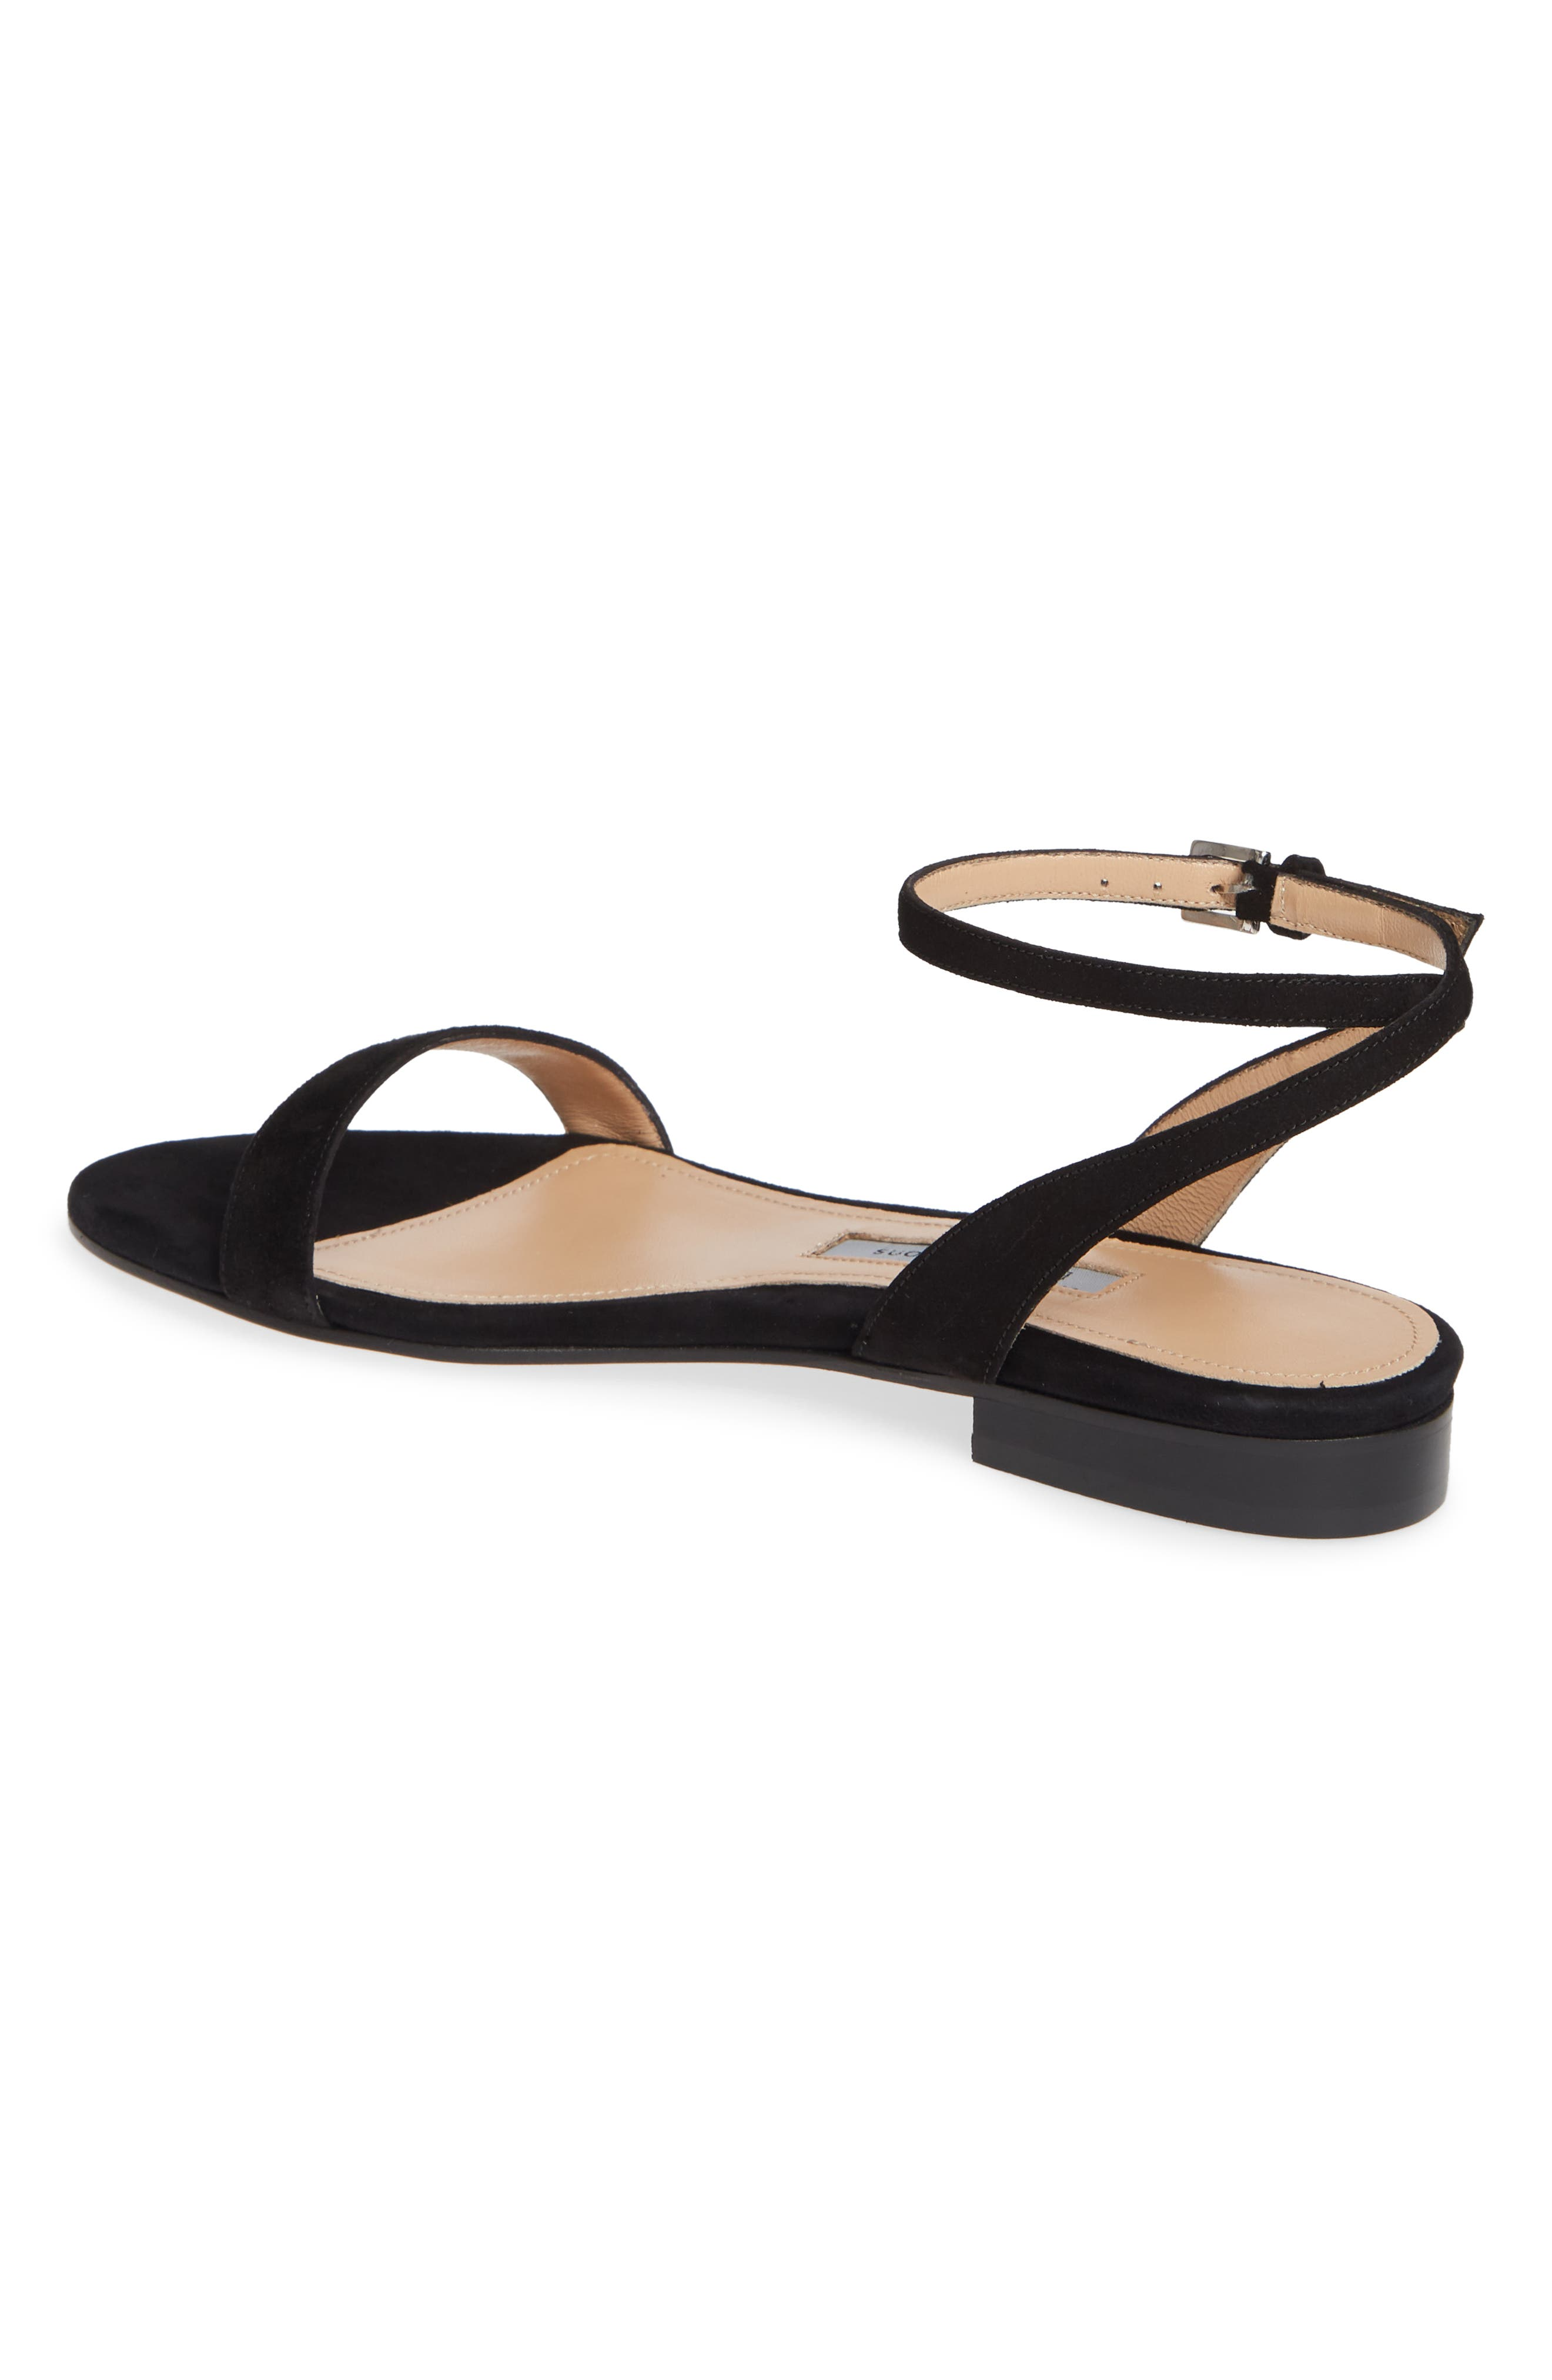 EMME PARSONS, One Ankle Strap Flat Sandal, Alternate thumbnail 2, color, BLACK